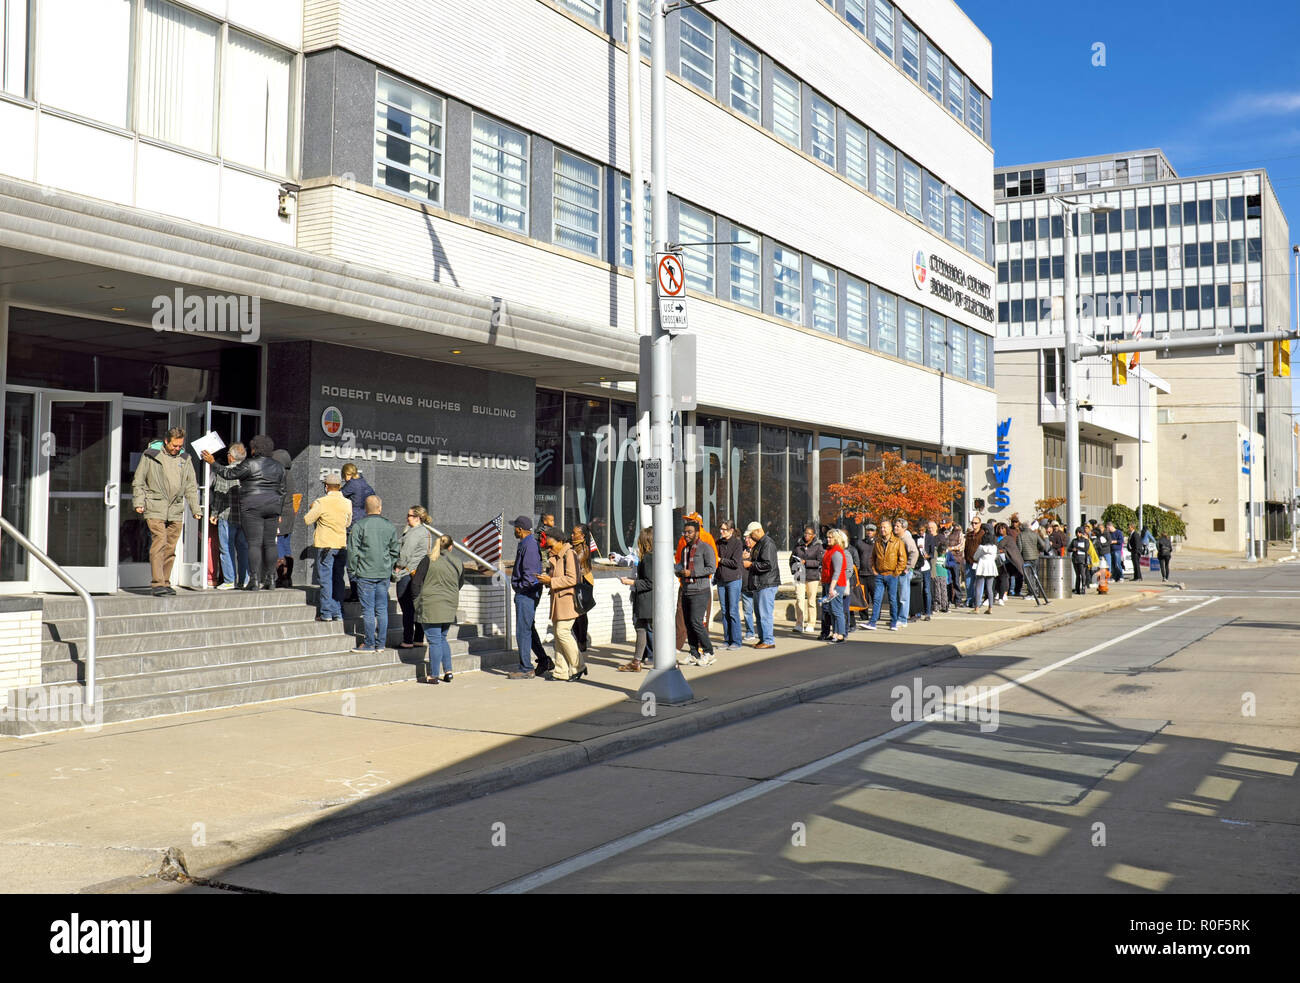 Cleveland, Ohio, USA.  4th Nov, 2018.  A diverse crowd of early voters wait in line to cast ballots for the 2018 US midterm elections.  The line at the Cuyahoga County Board of Elections goes down Superior Avenue and wraps around the building with an unprecedented number of early voters in the US making this one of the most momentous midterm elections in history.  Credit: Mark Kanning/Alamy Live News. - Stock Image